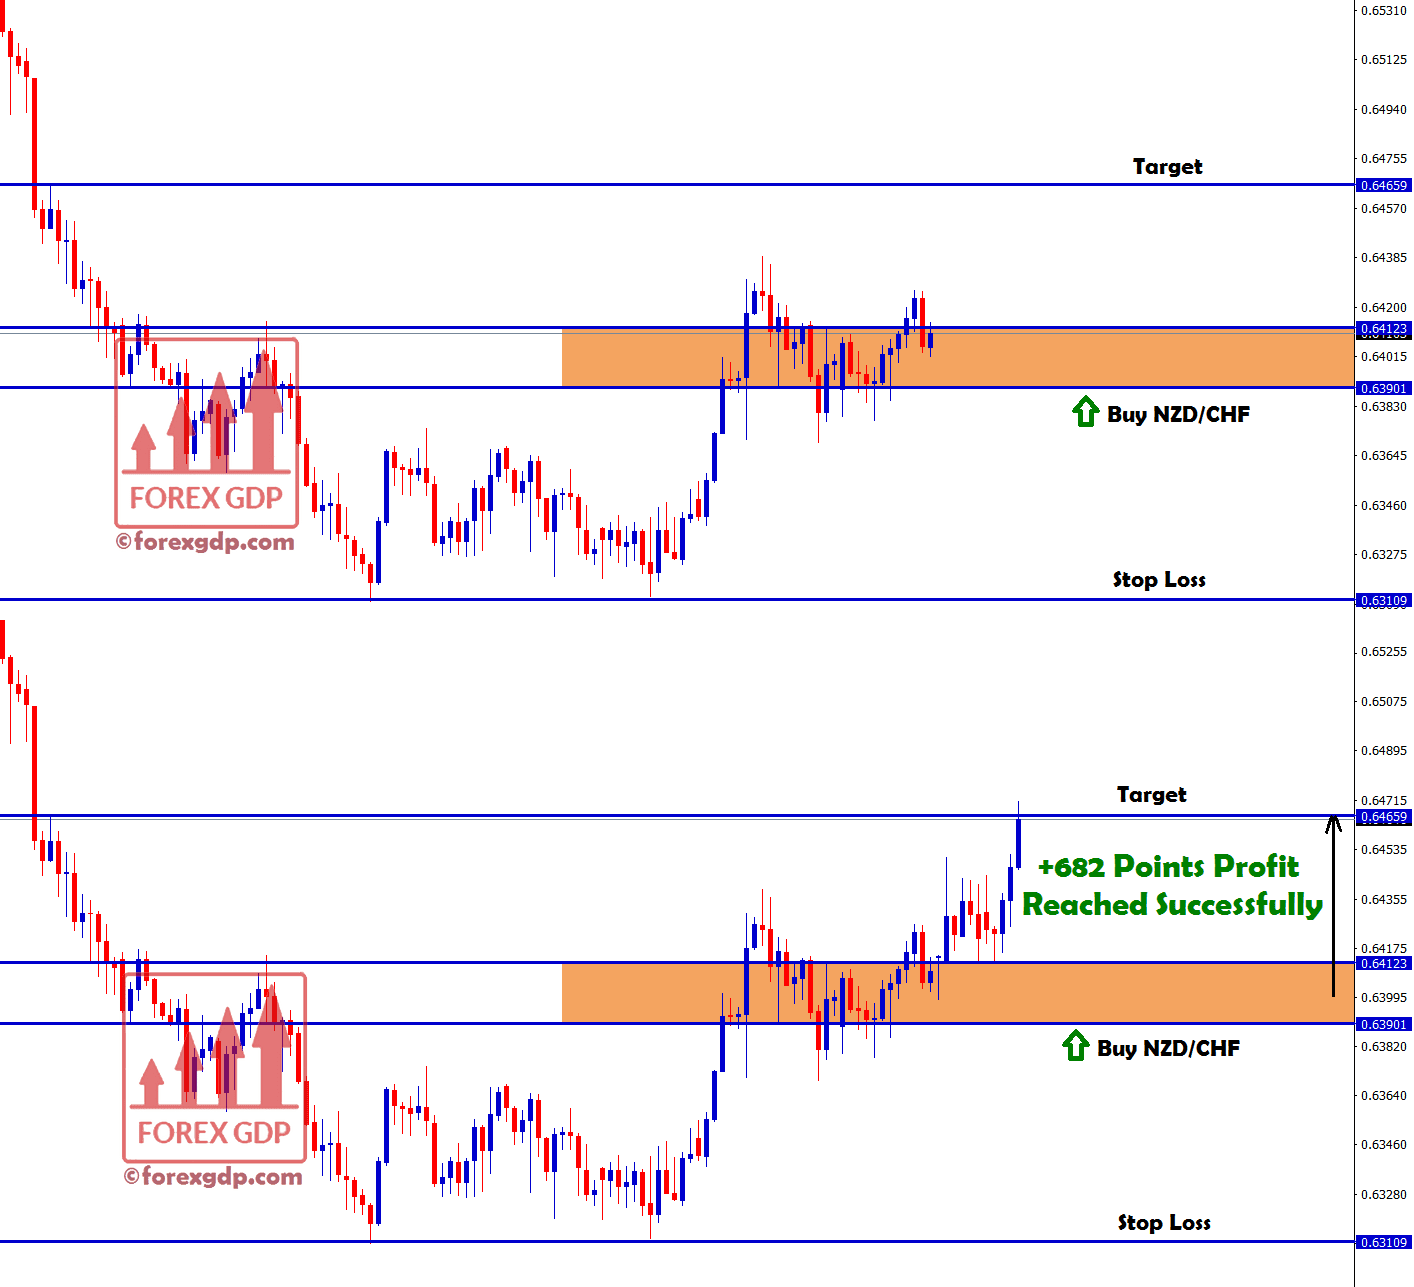 nzd chf buy signal hits target with +682 points profit